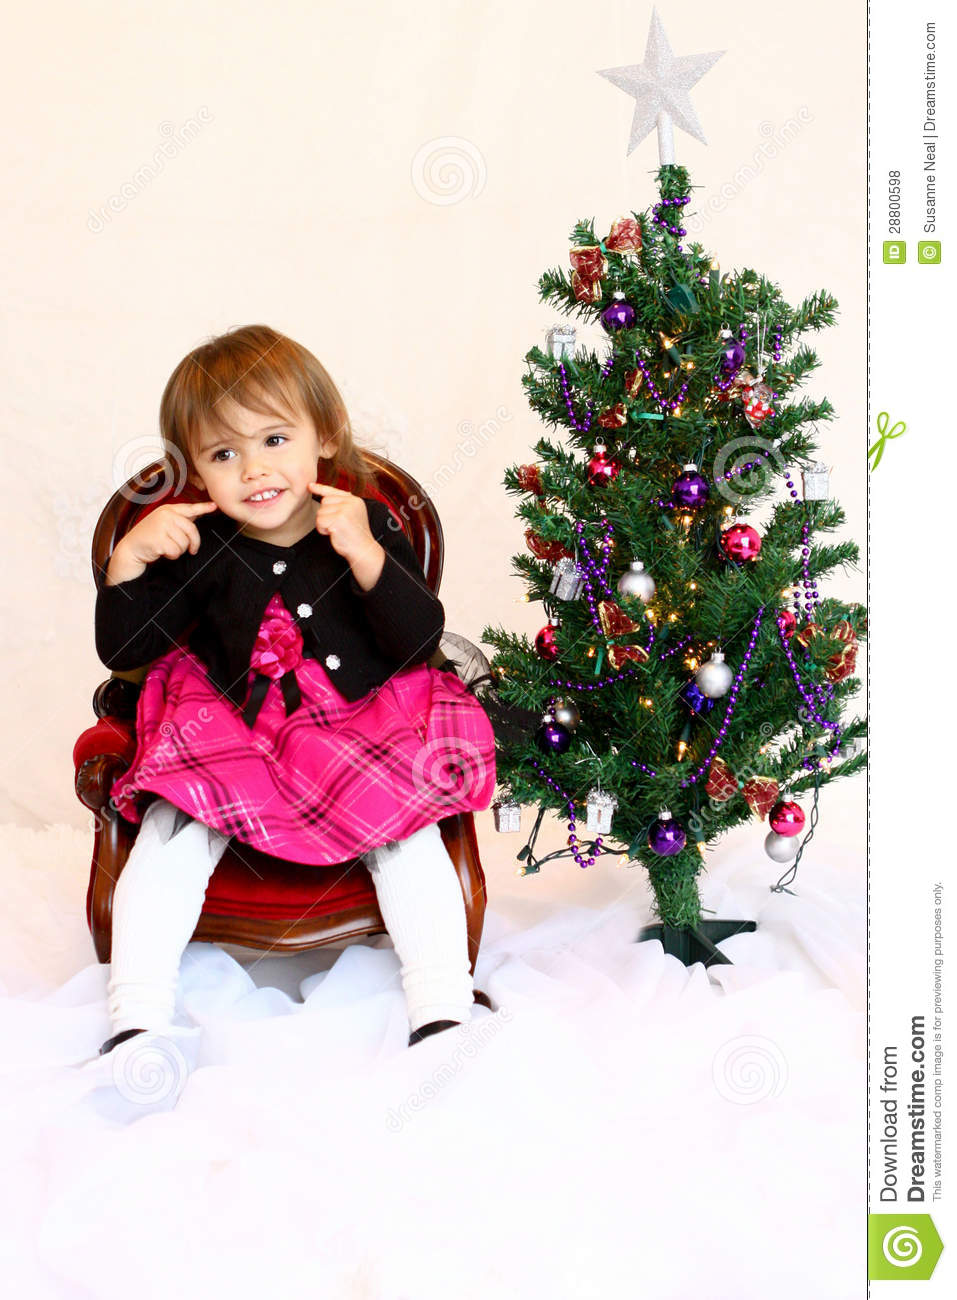 download happy face 1 year old christmas girl stock photo image of decorated